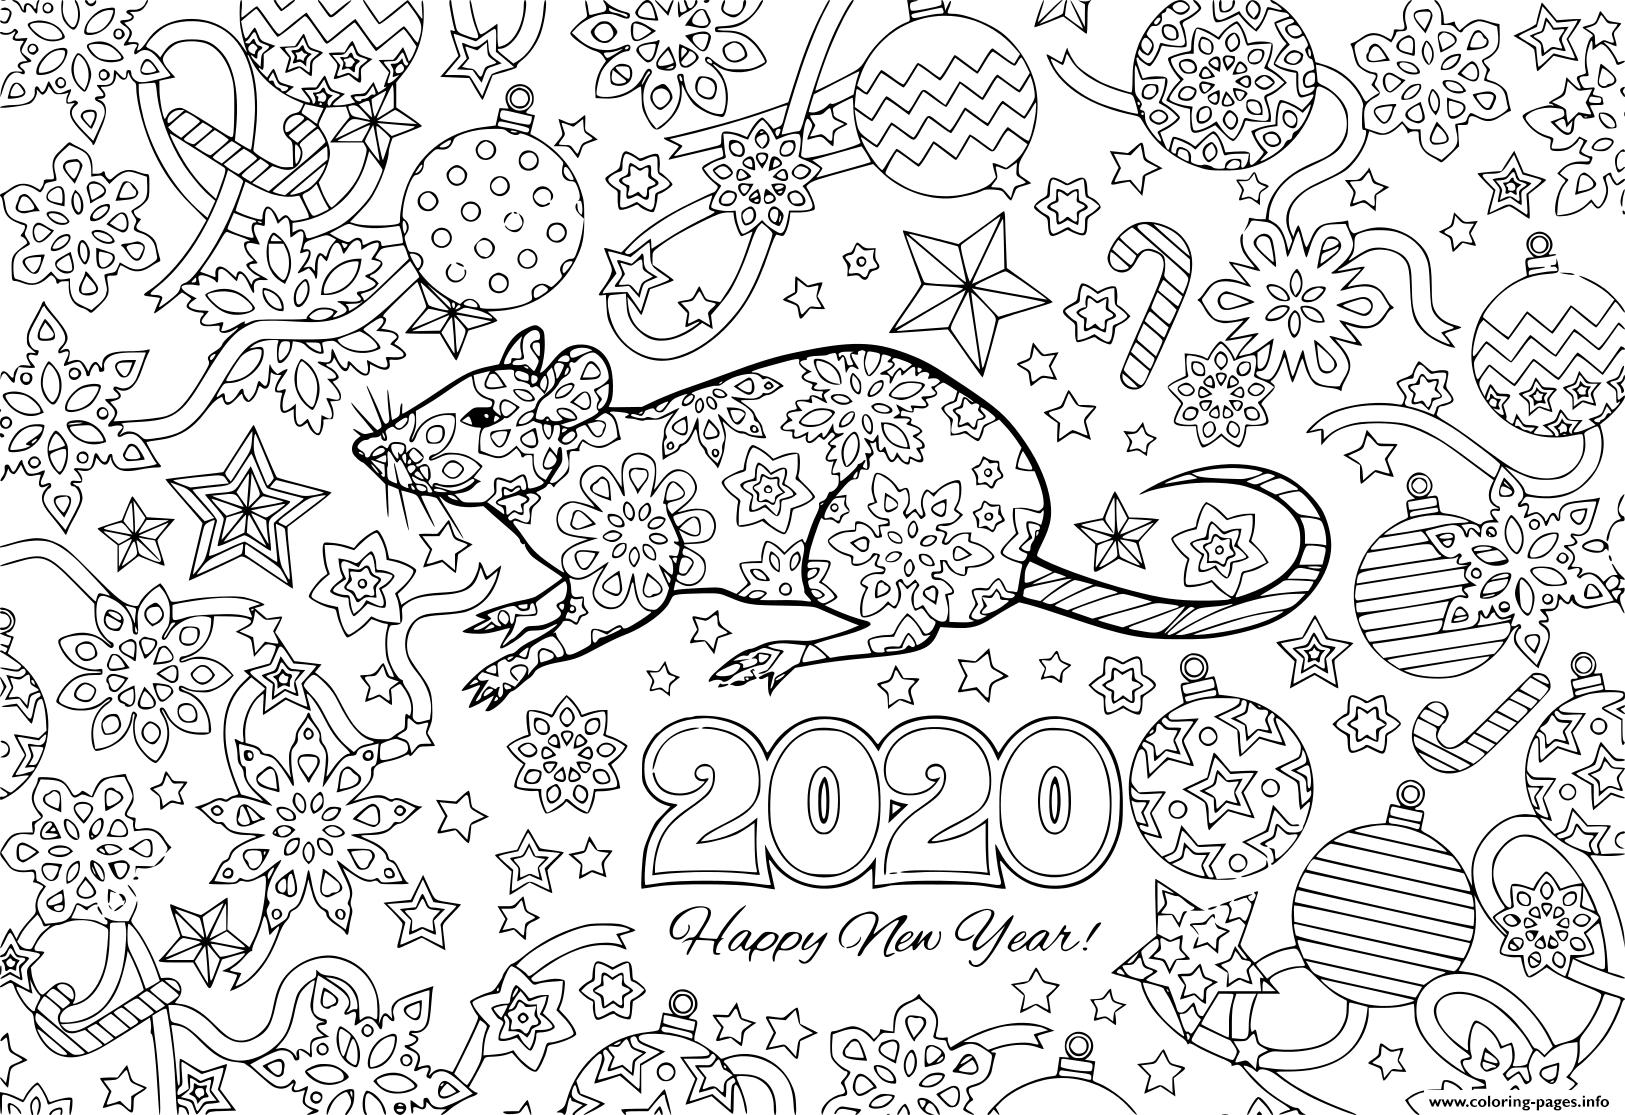 New Year 2020 Rat And Festive Objects Image For Calendar Coloring Pages Printable